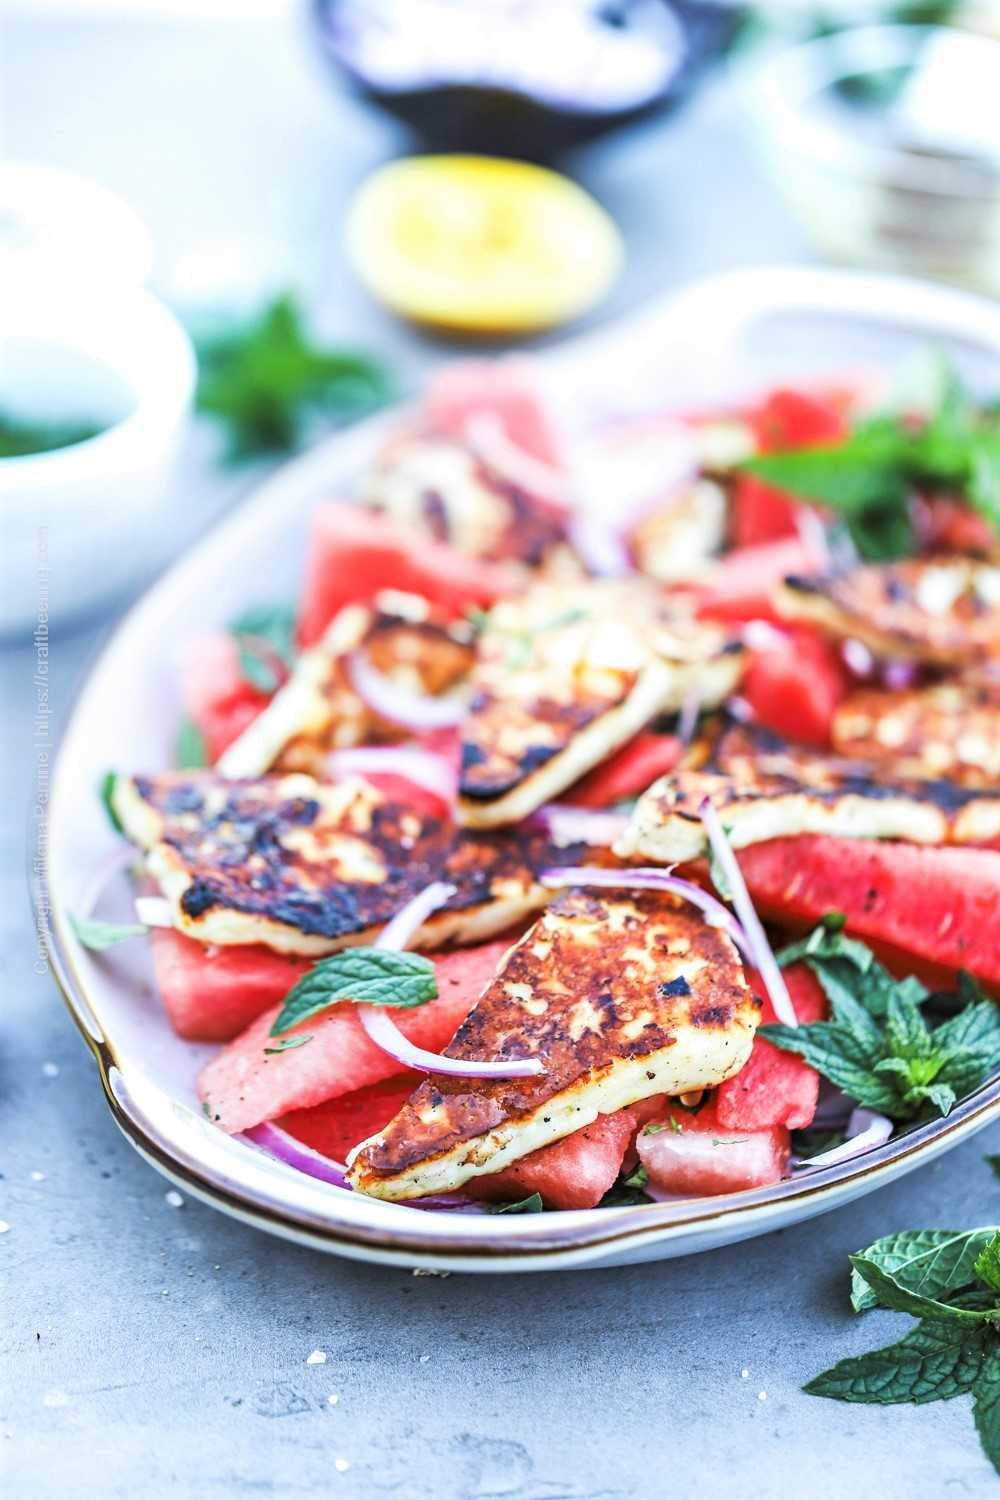 Grilled halloumi cheese with watermelon, red onion and mint - a vibrant, fresh summer salad.